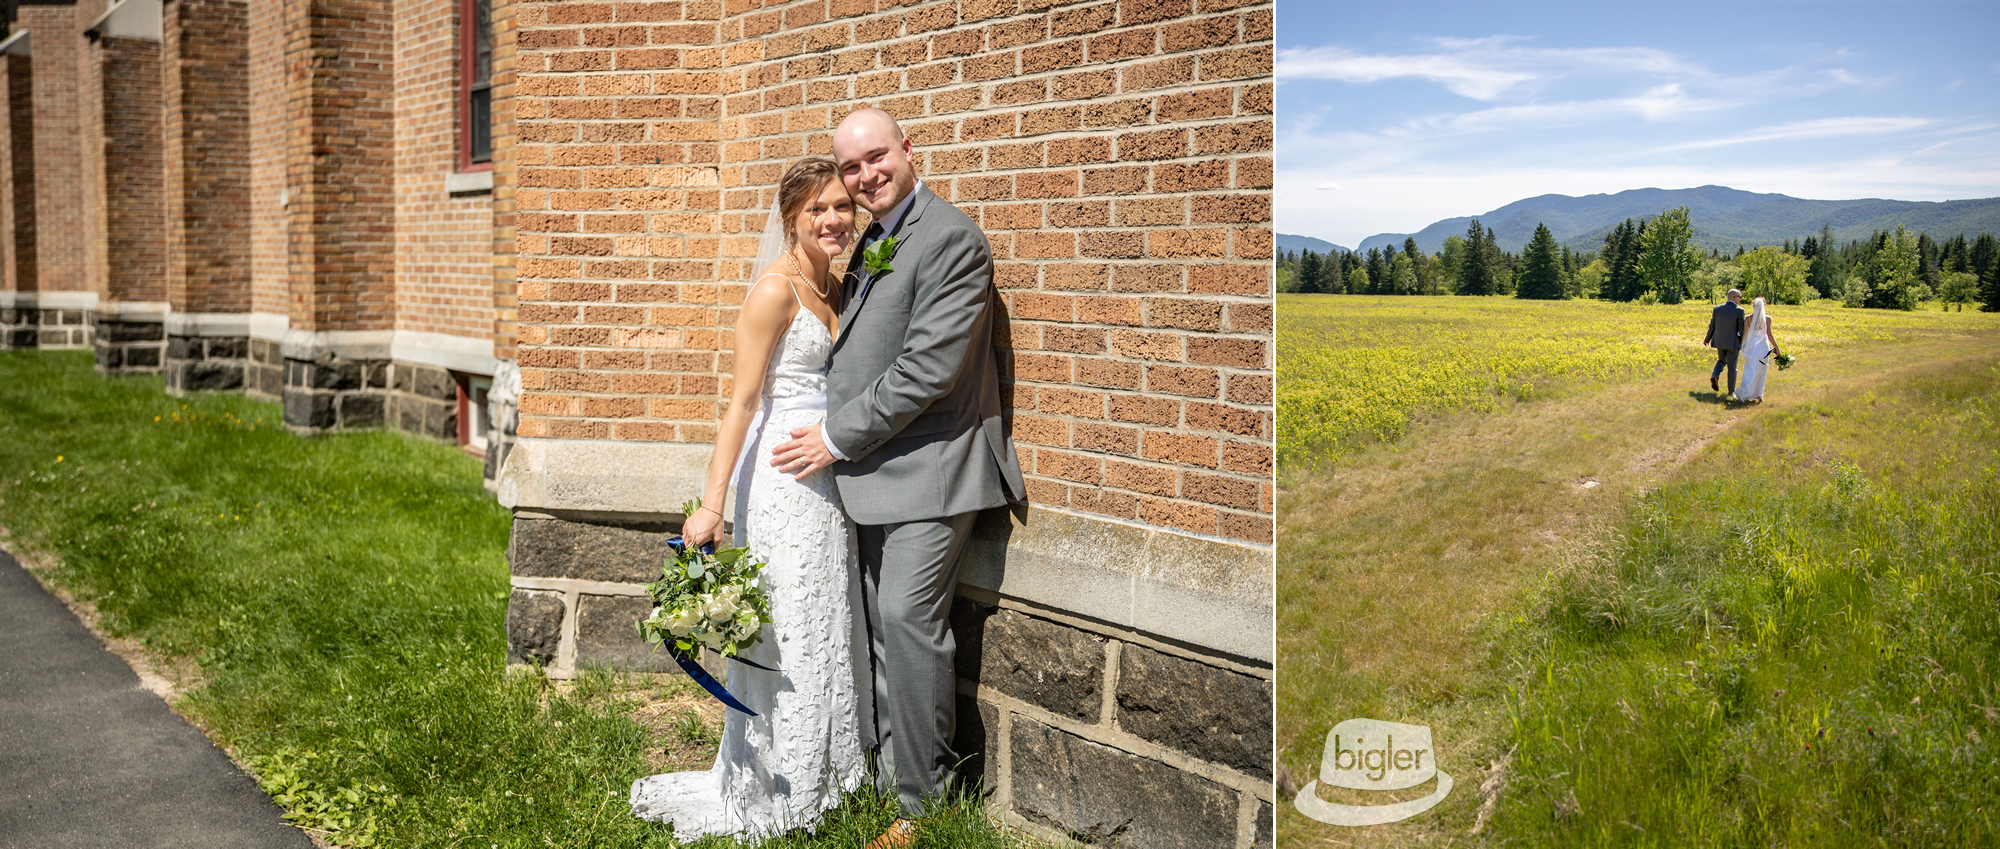 20180616_-_17_-_Lake_Placid_Wedding